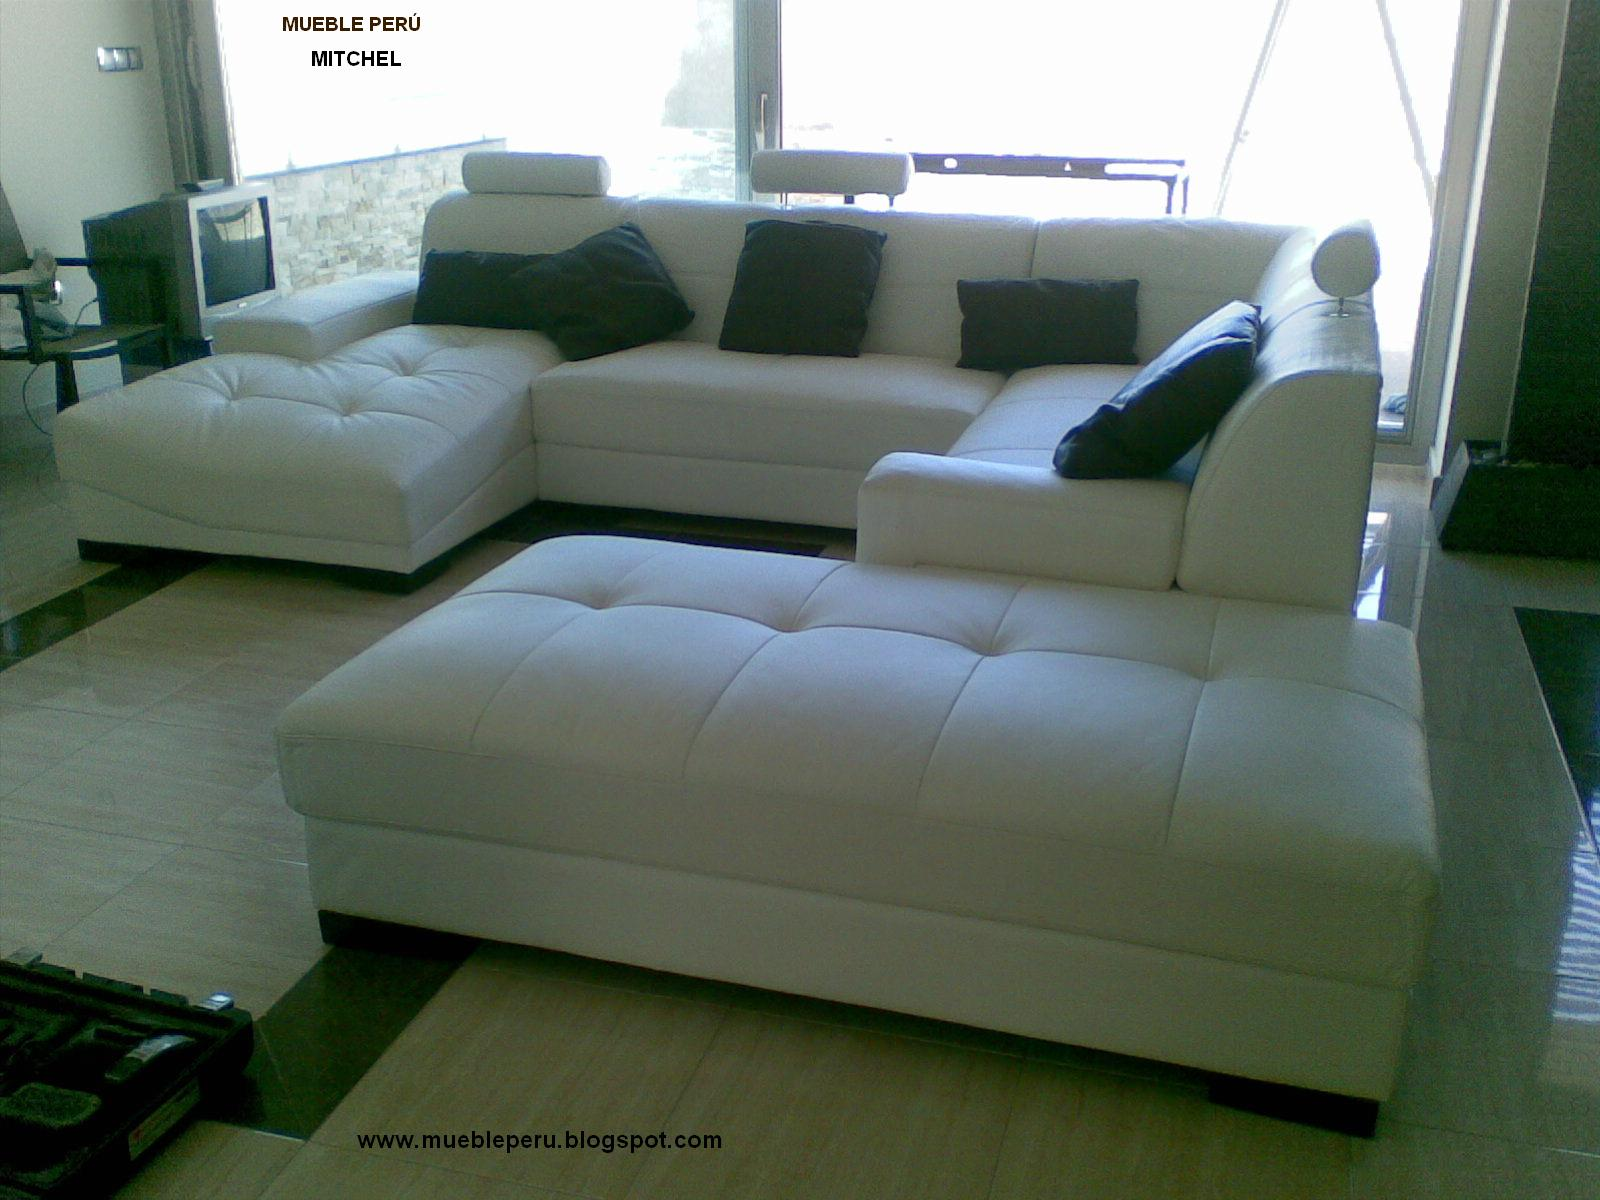 Comment On This Picture Lima Muebles Sala Living Sof Seccionales